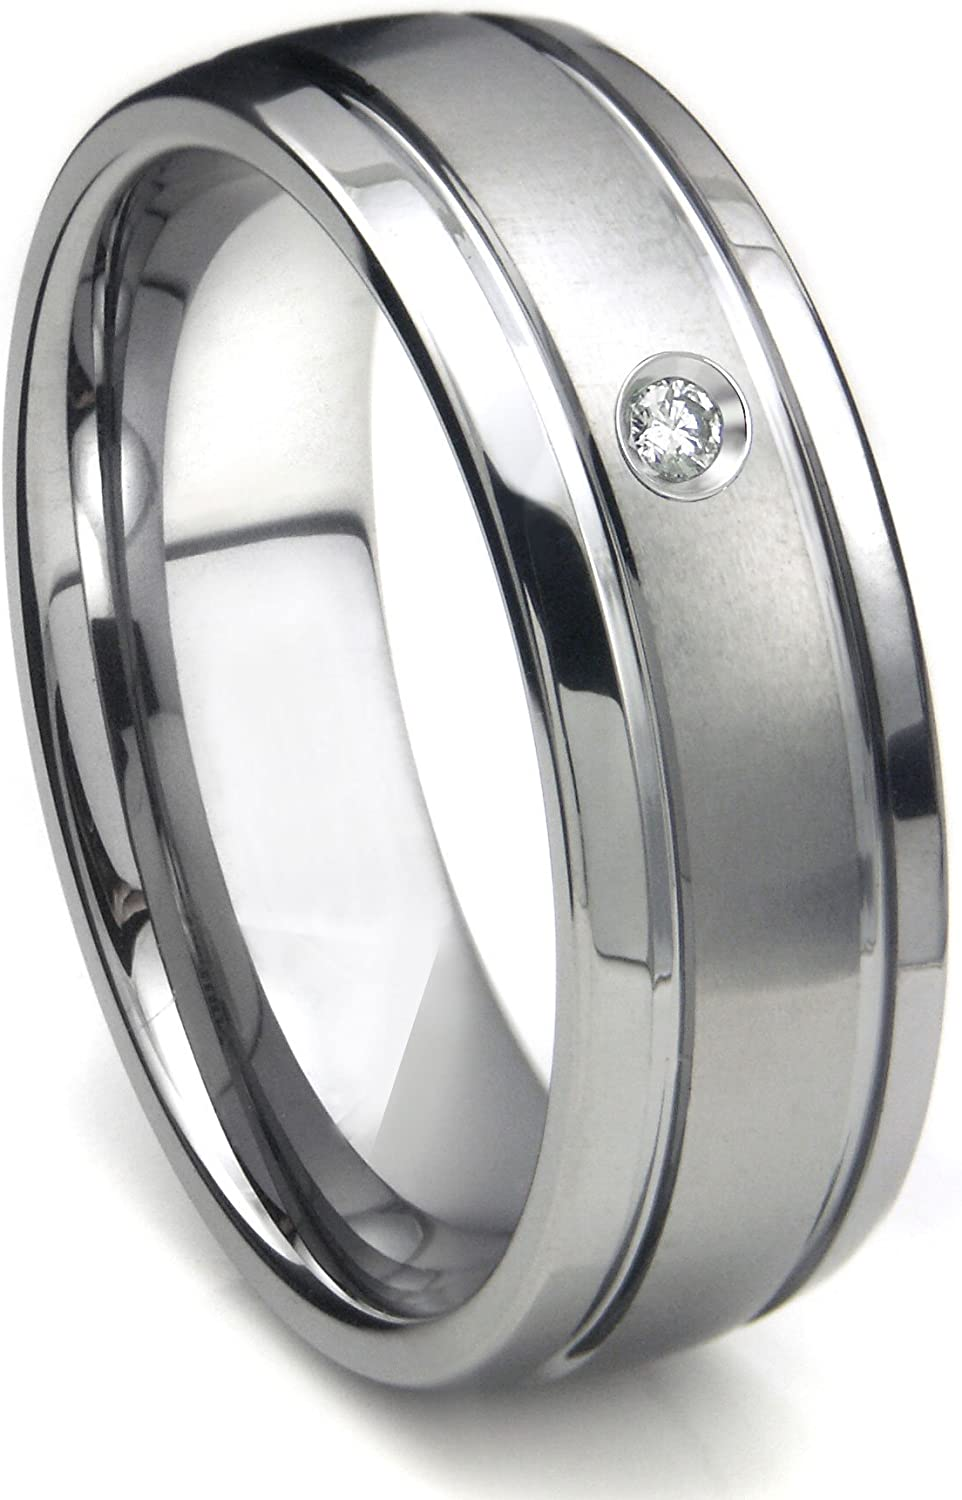 Sizes 8 to 13 Silver City Jewelry 7mm Tungsten Diamond Wedding Ring Domed Polished Finish for him and her Comfort fit